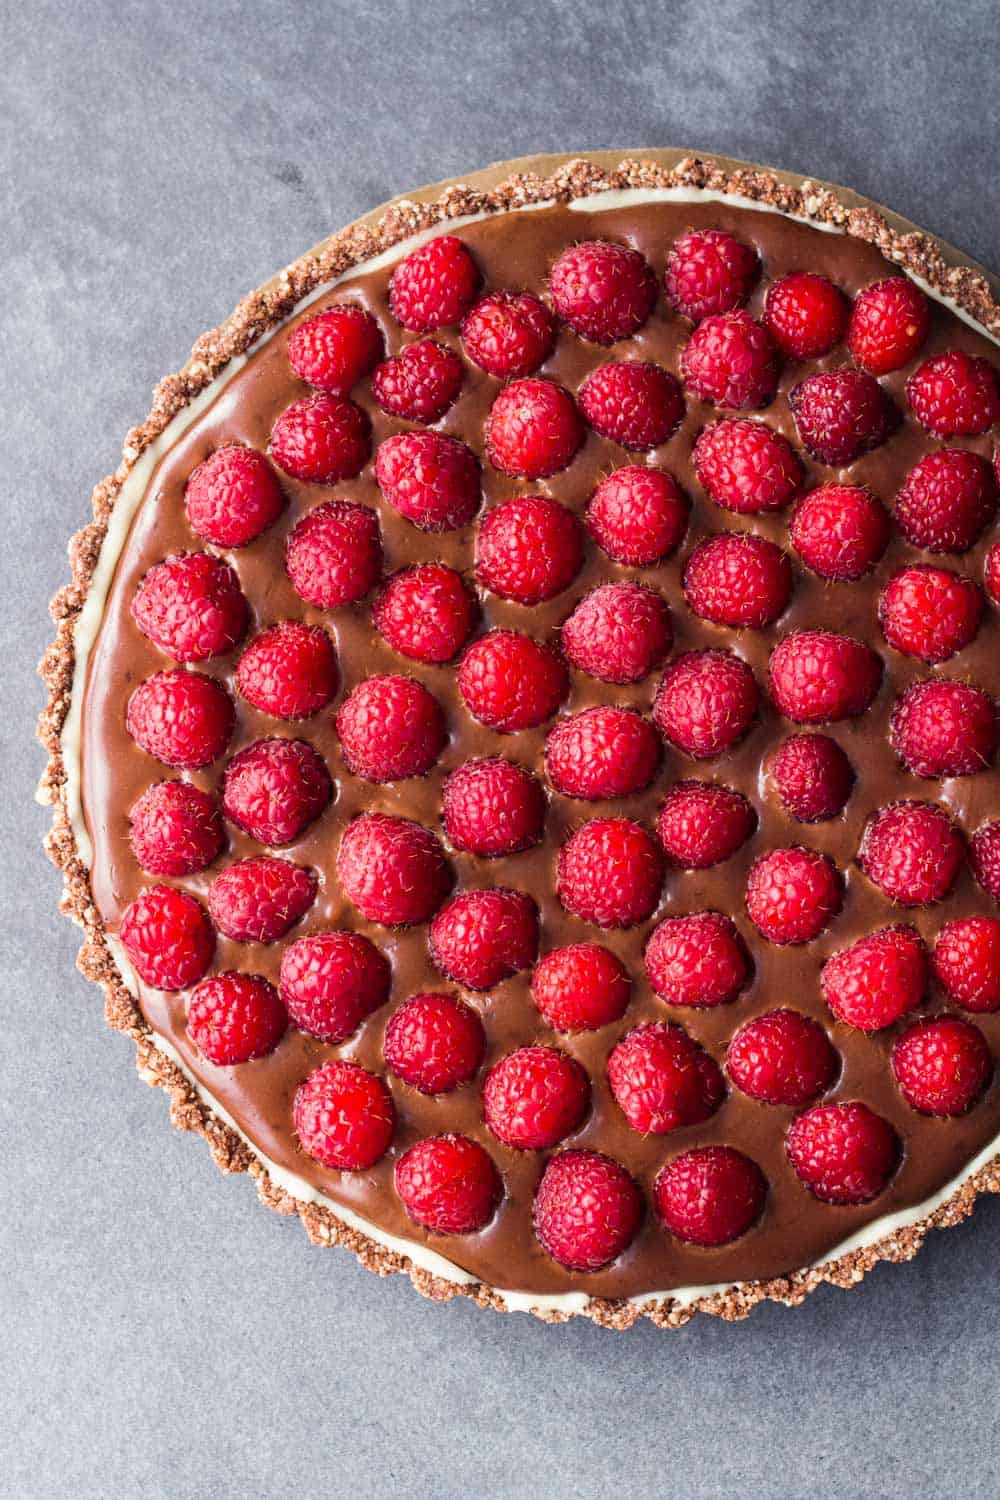 Chocolate Raspberry Tart with Almond Crust and white chocolate layer in between.